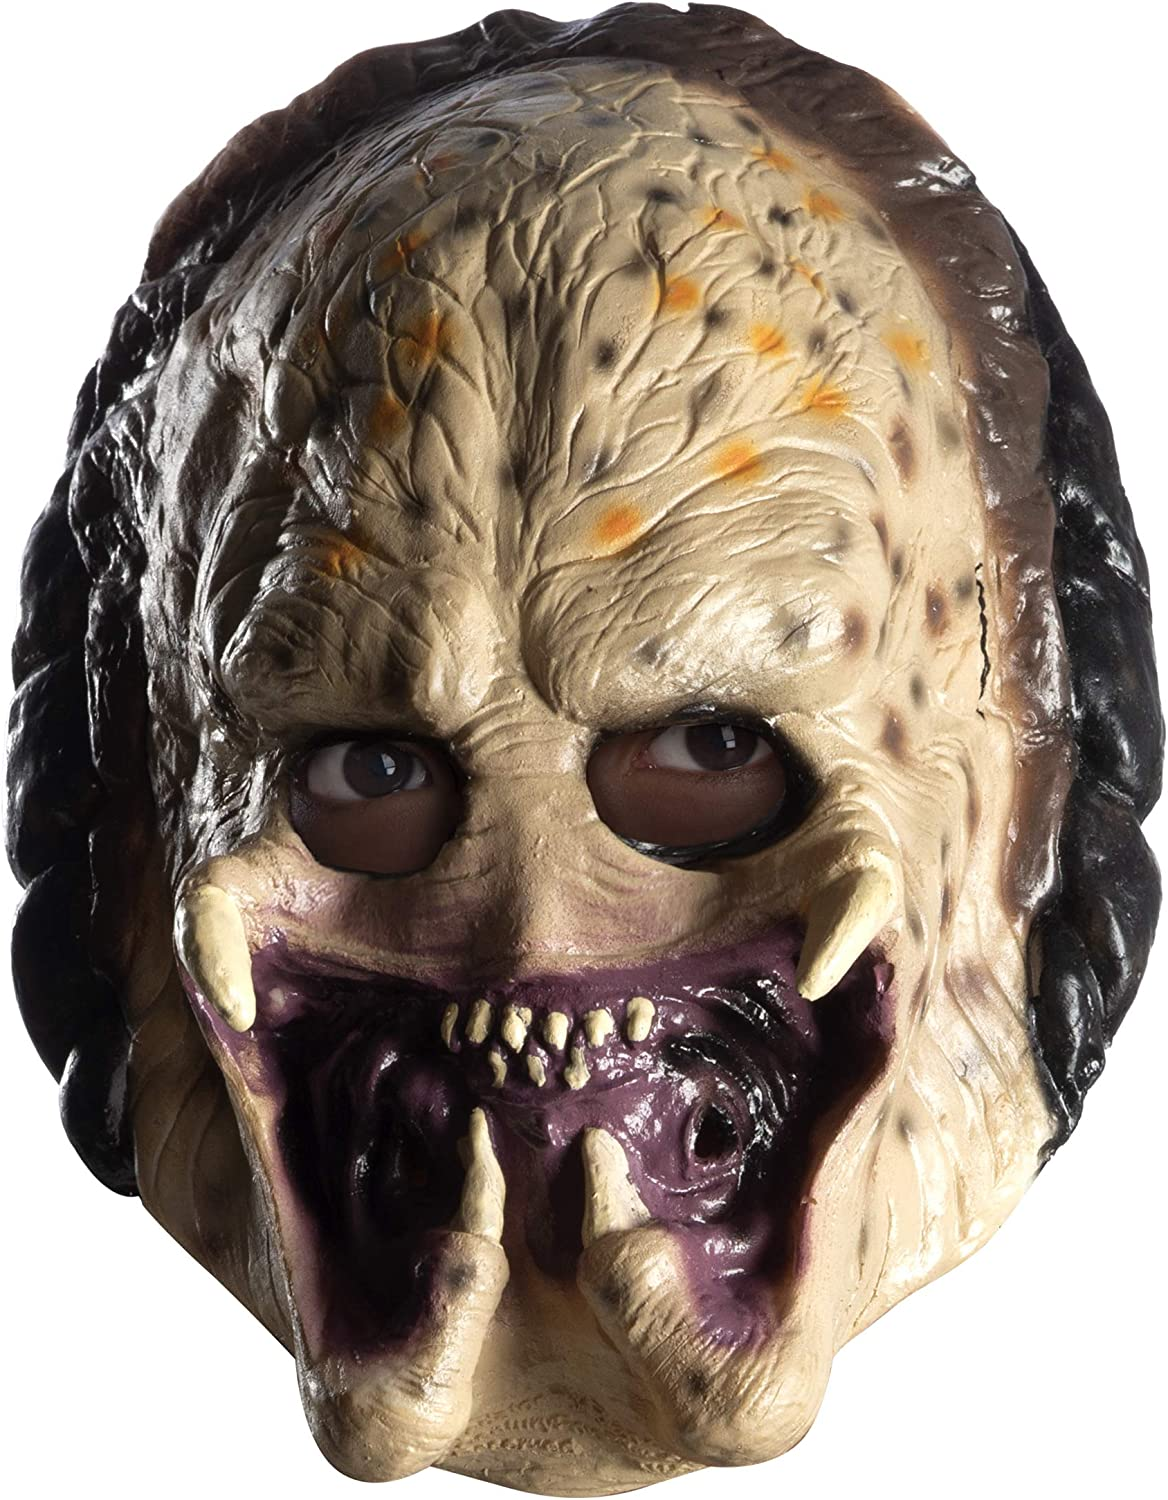 Aliens Vs. Predator, Childs Predator 3/4 Vinyl Mask